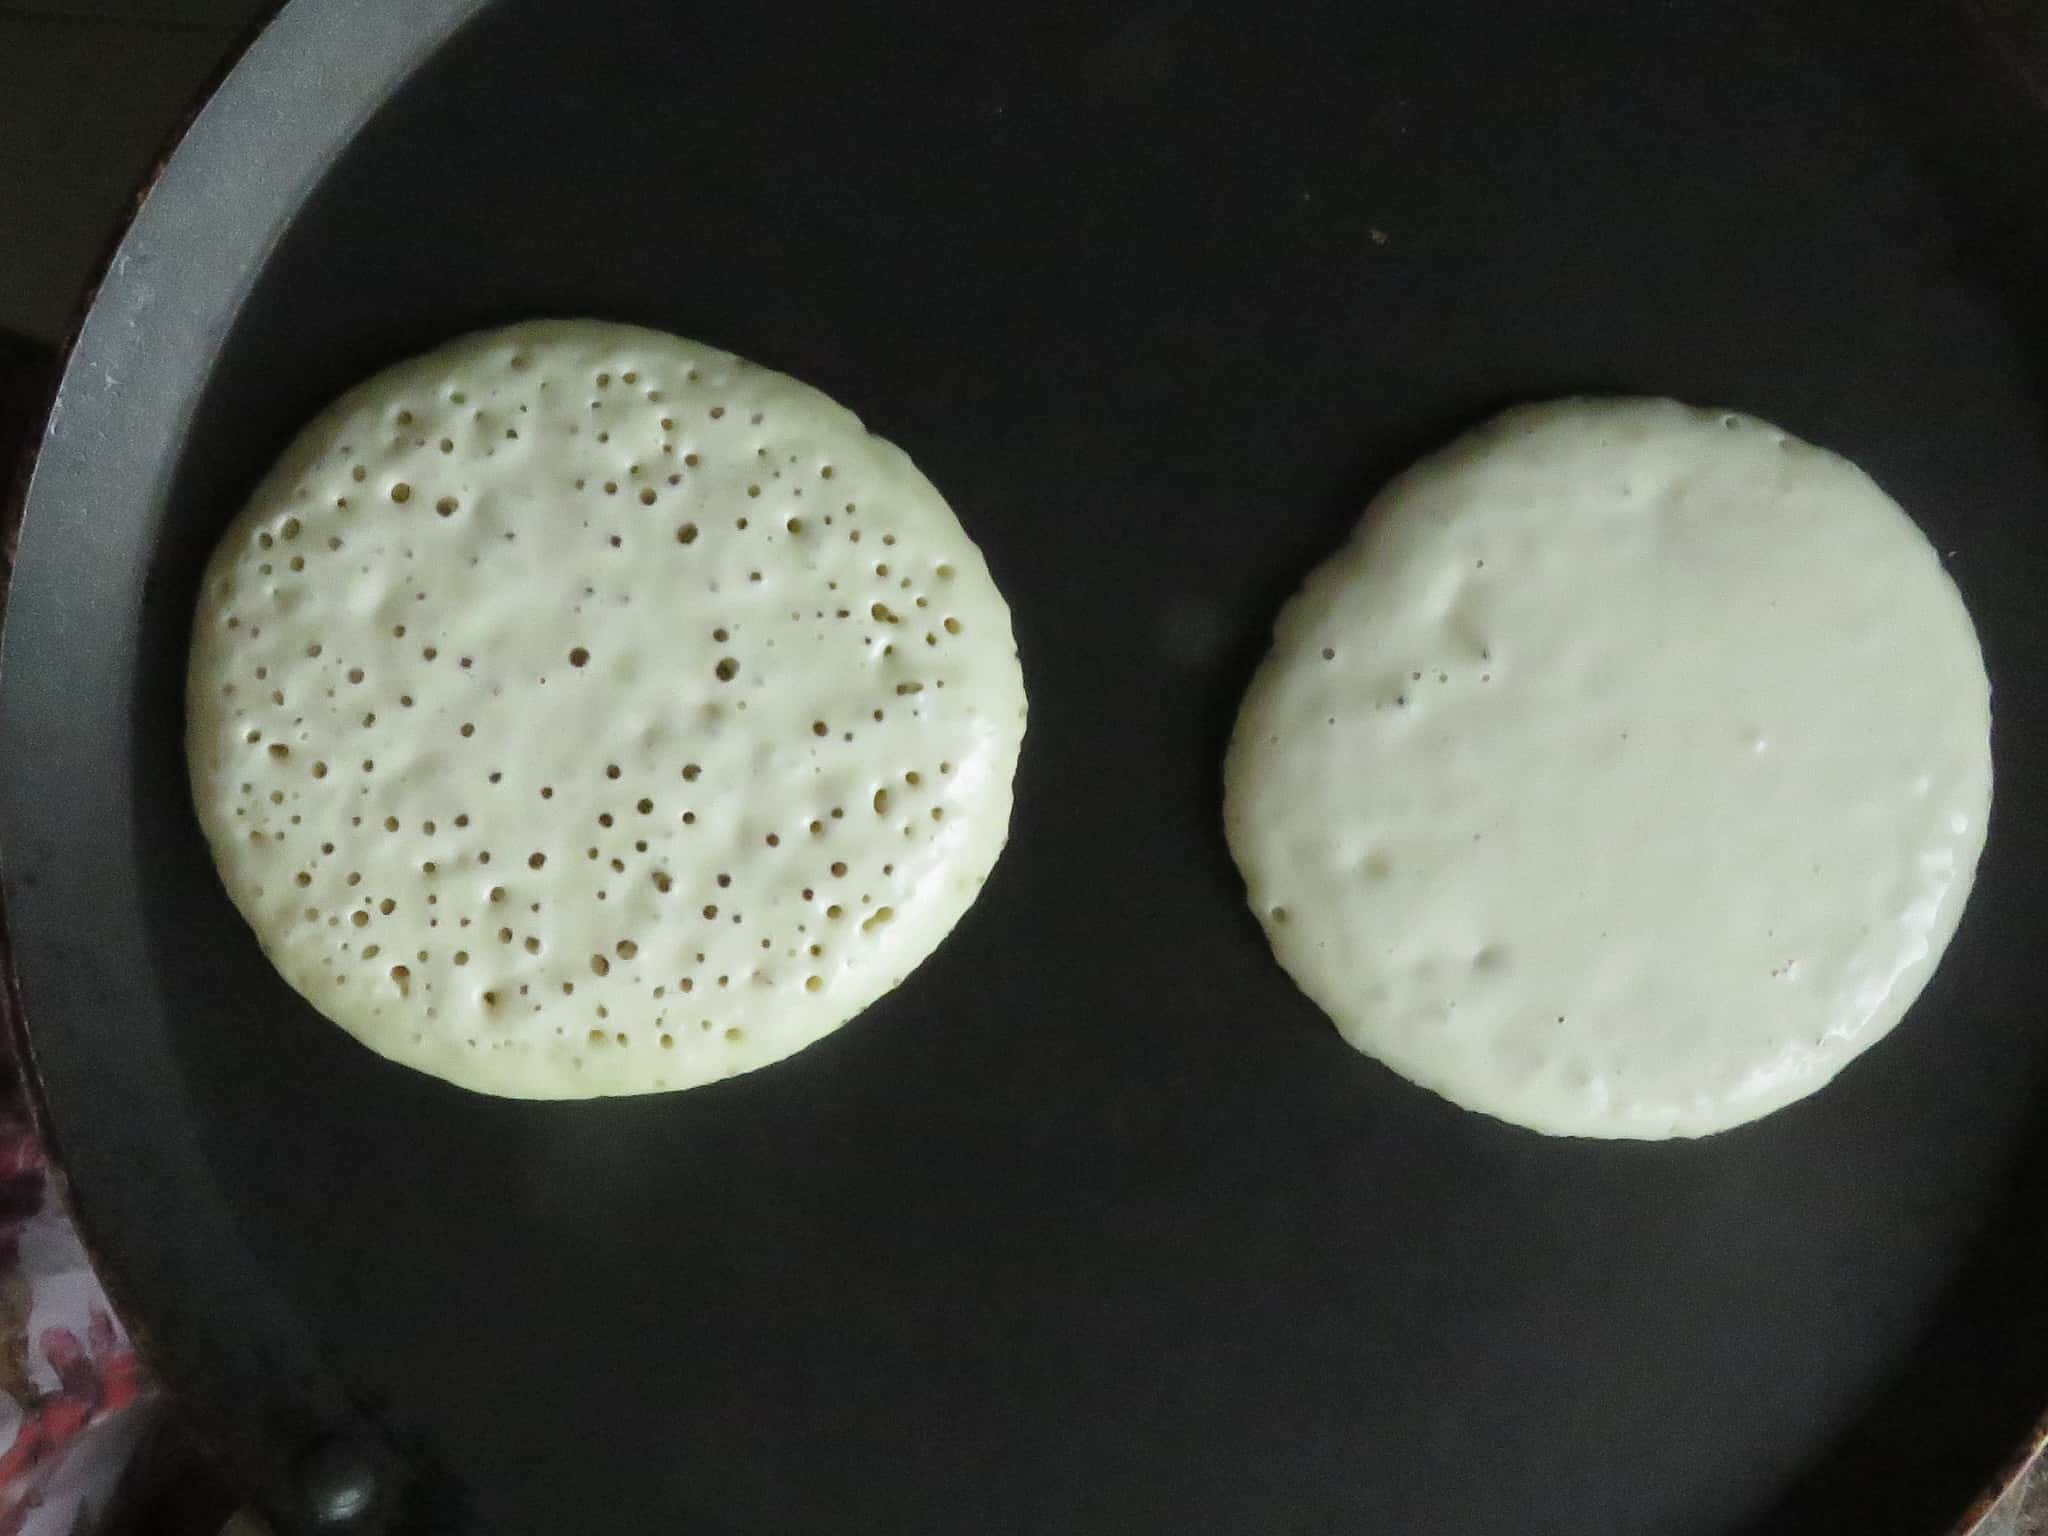 pic shows how to make two pancakes at the same time.